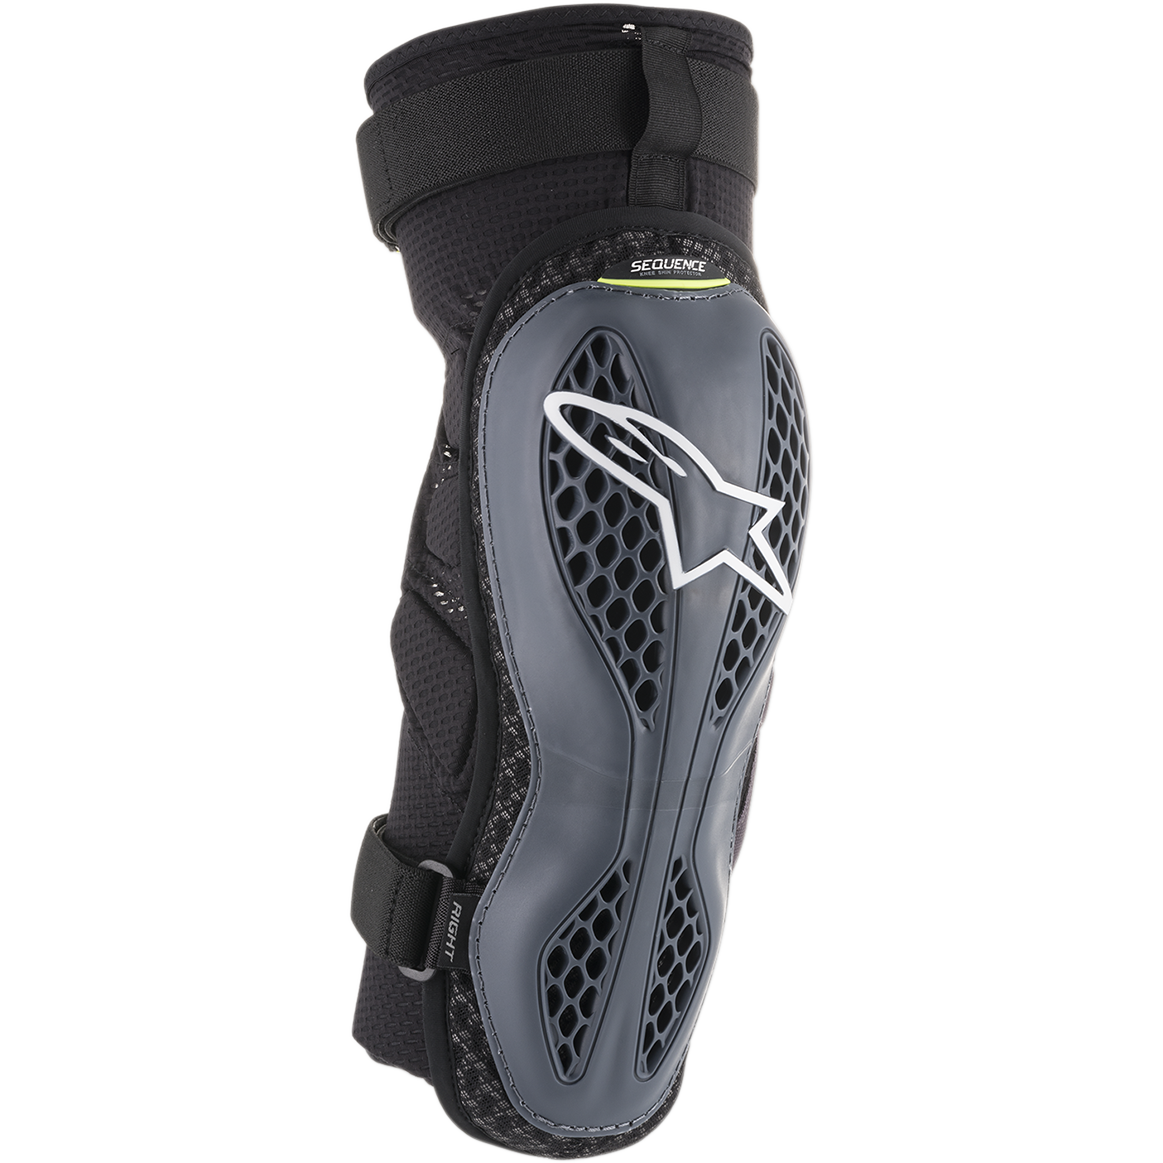 Sequence Knee Protectors